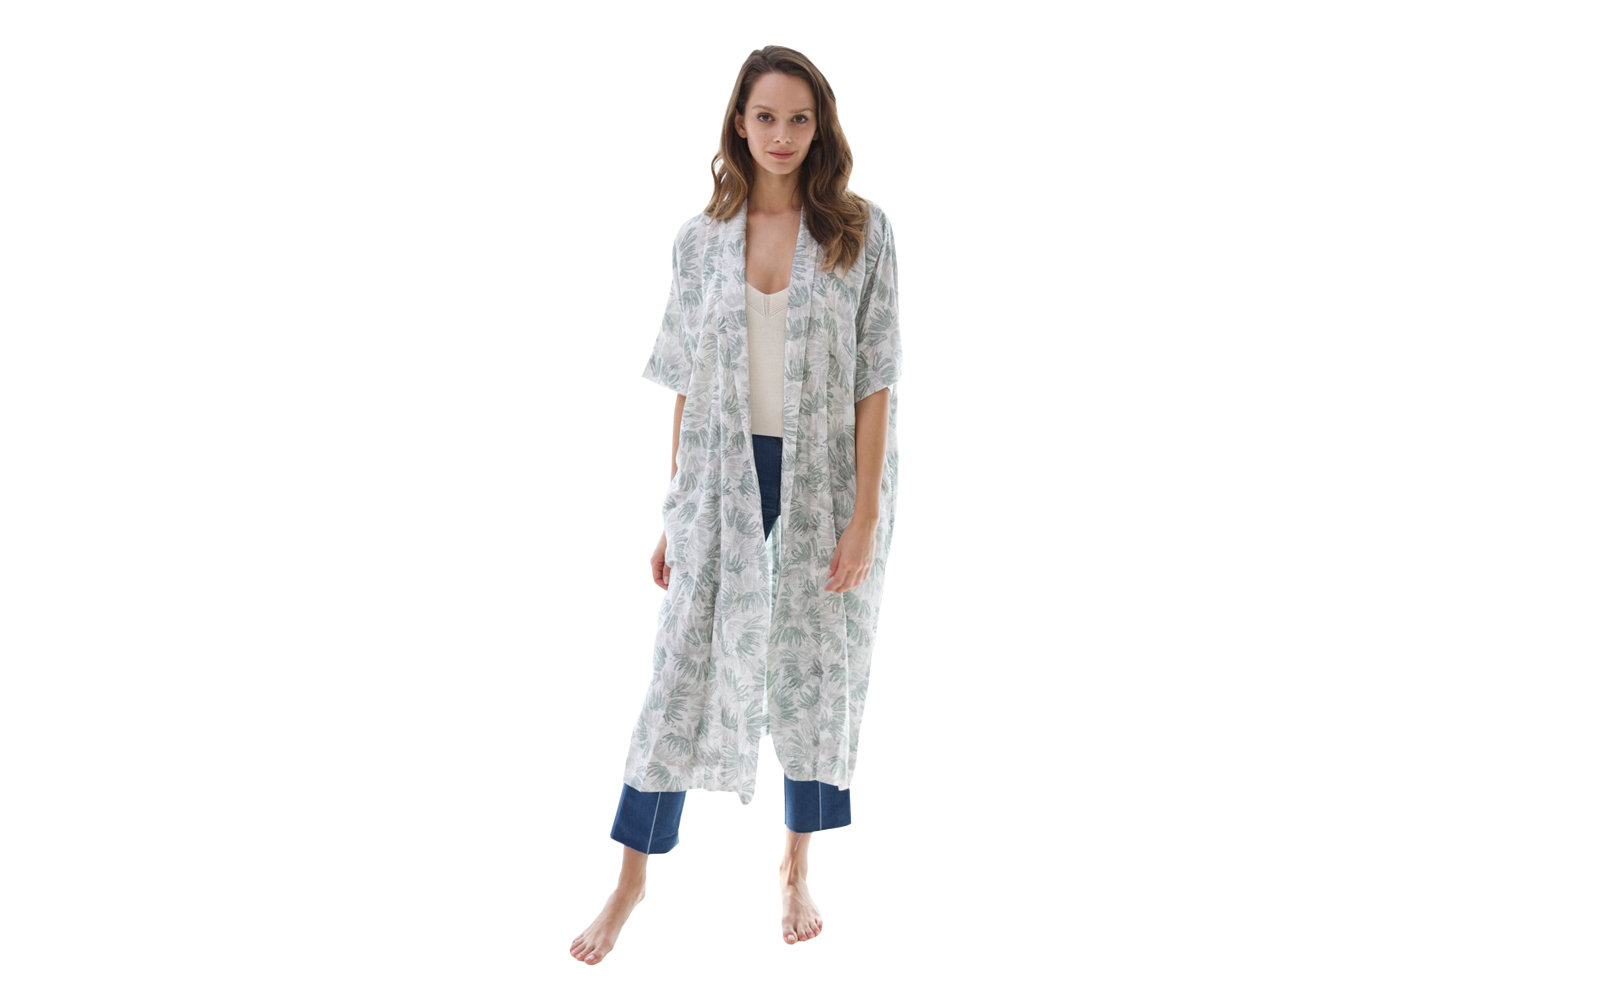 Mirth Laos Long Robe in Peacock Print